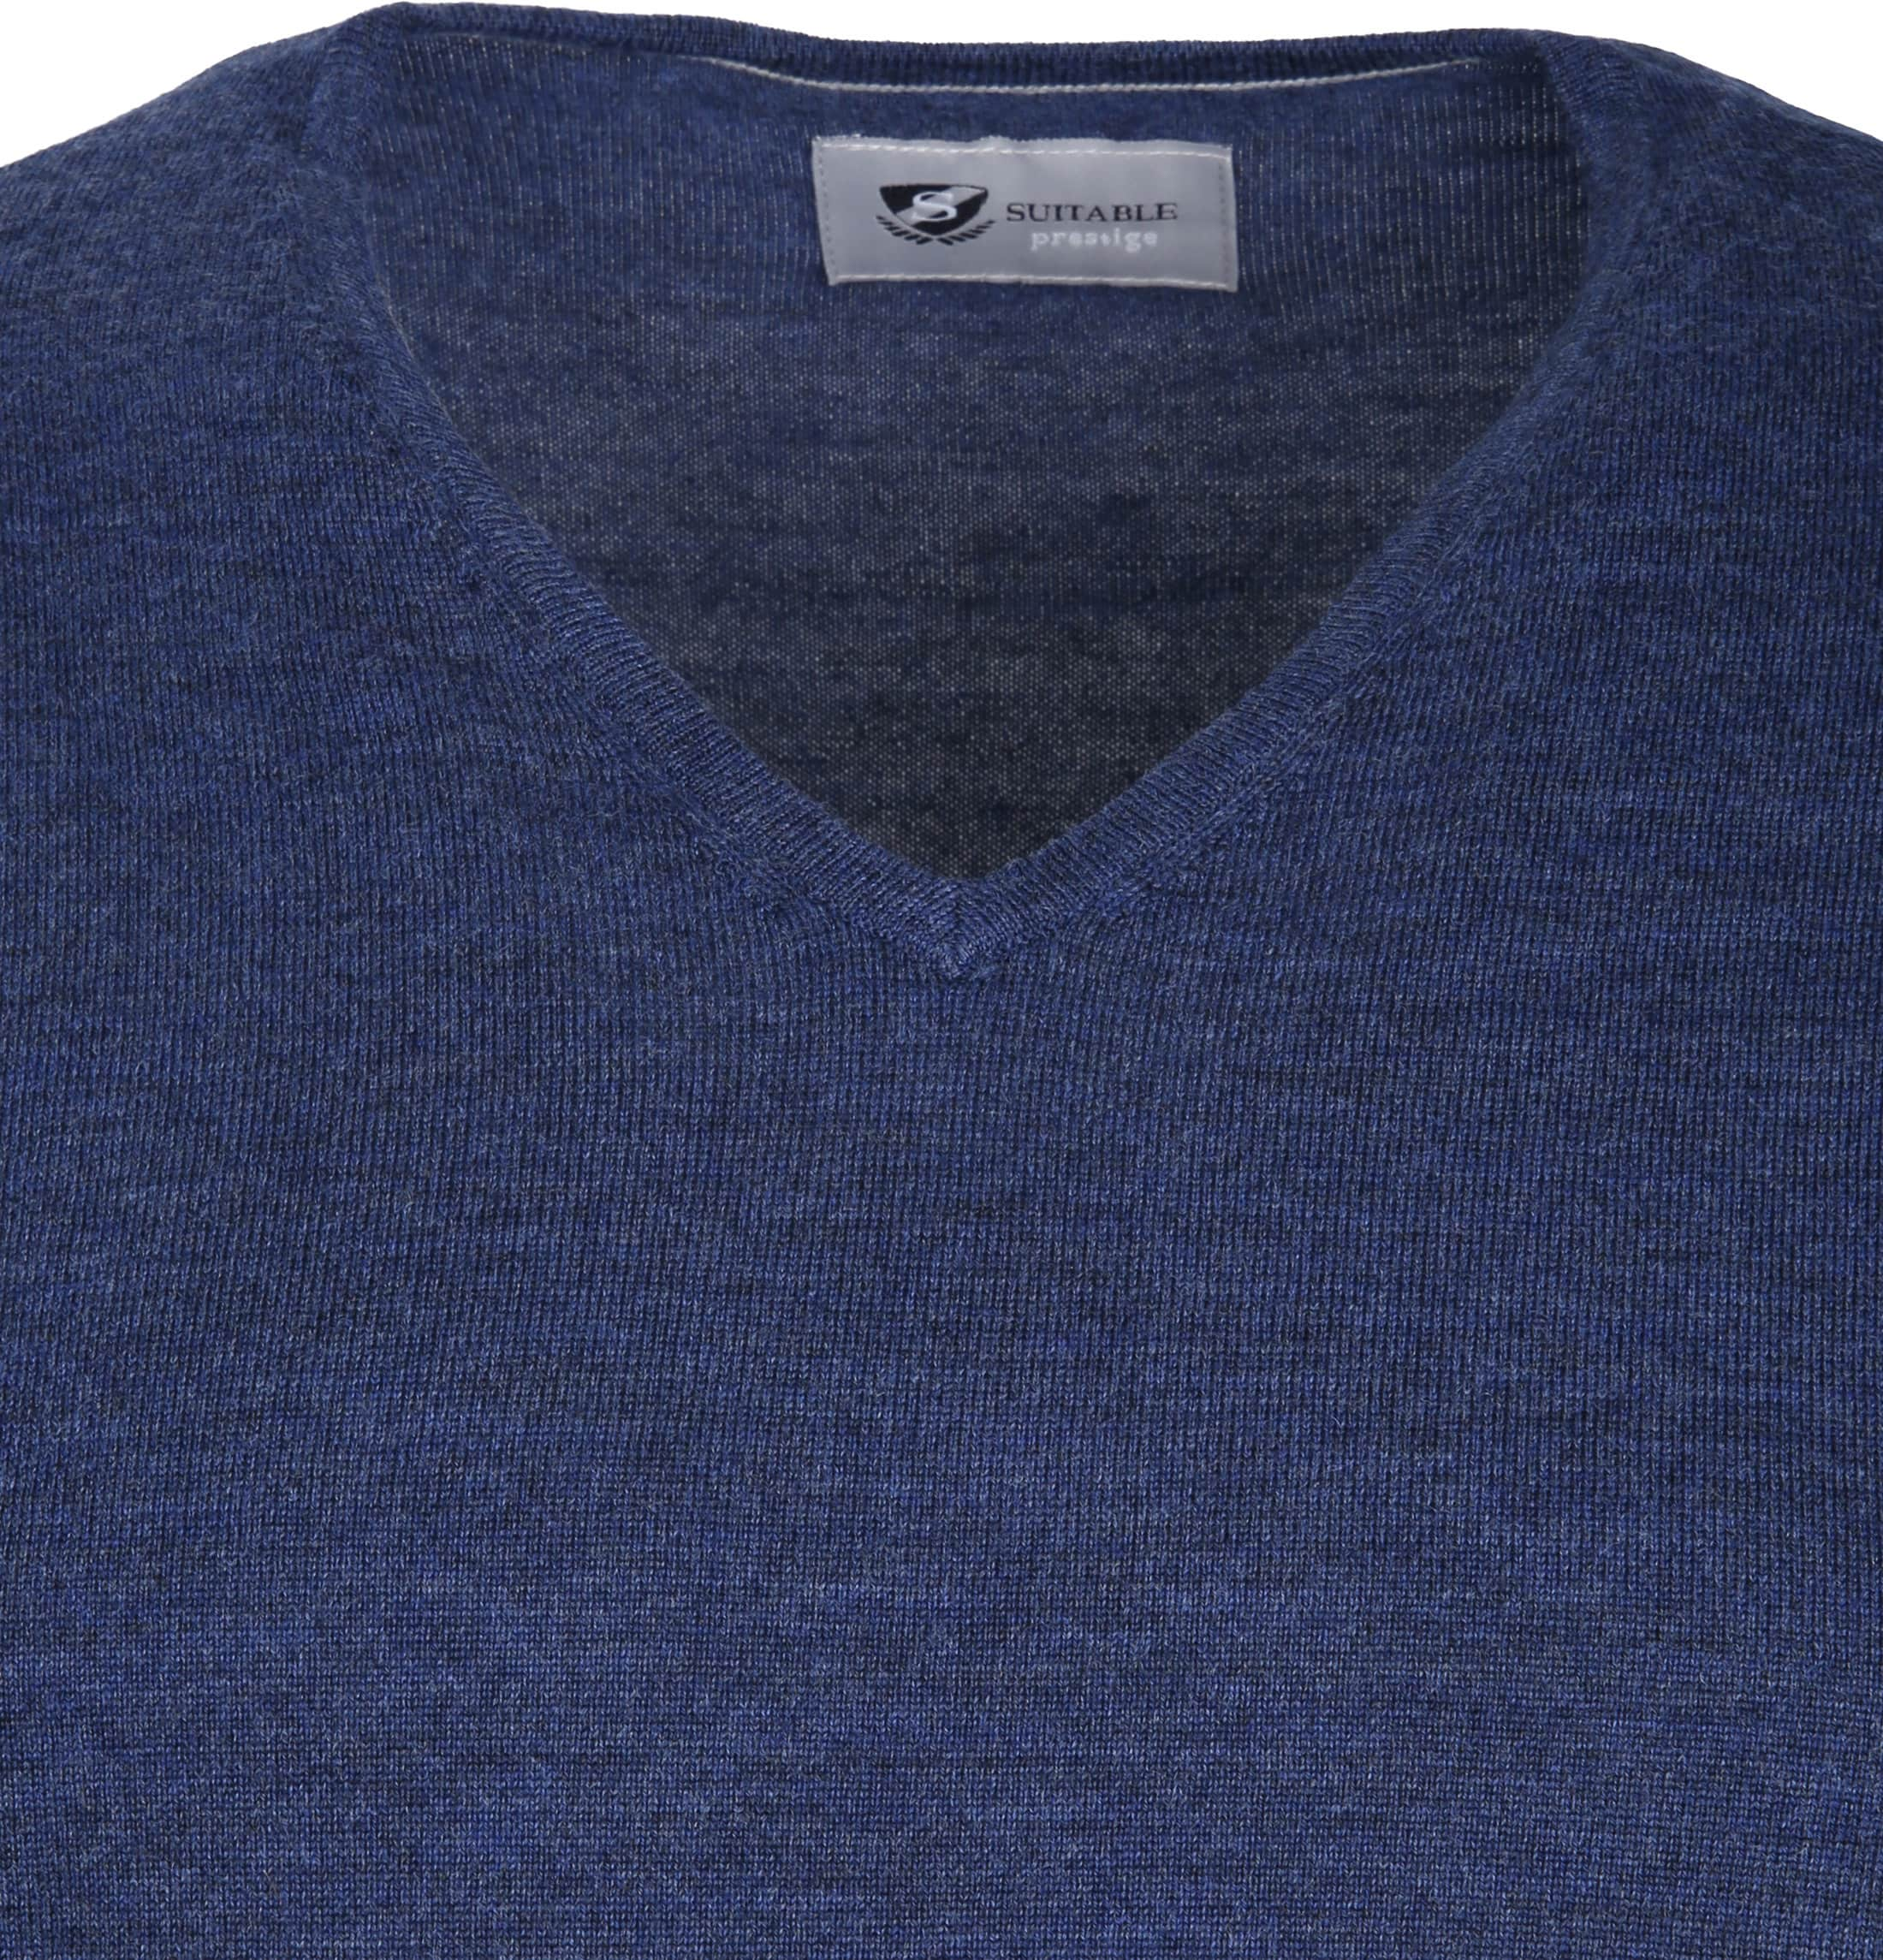 Suitable Prestige Pullover V-Ausschnitt Navy foto 1